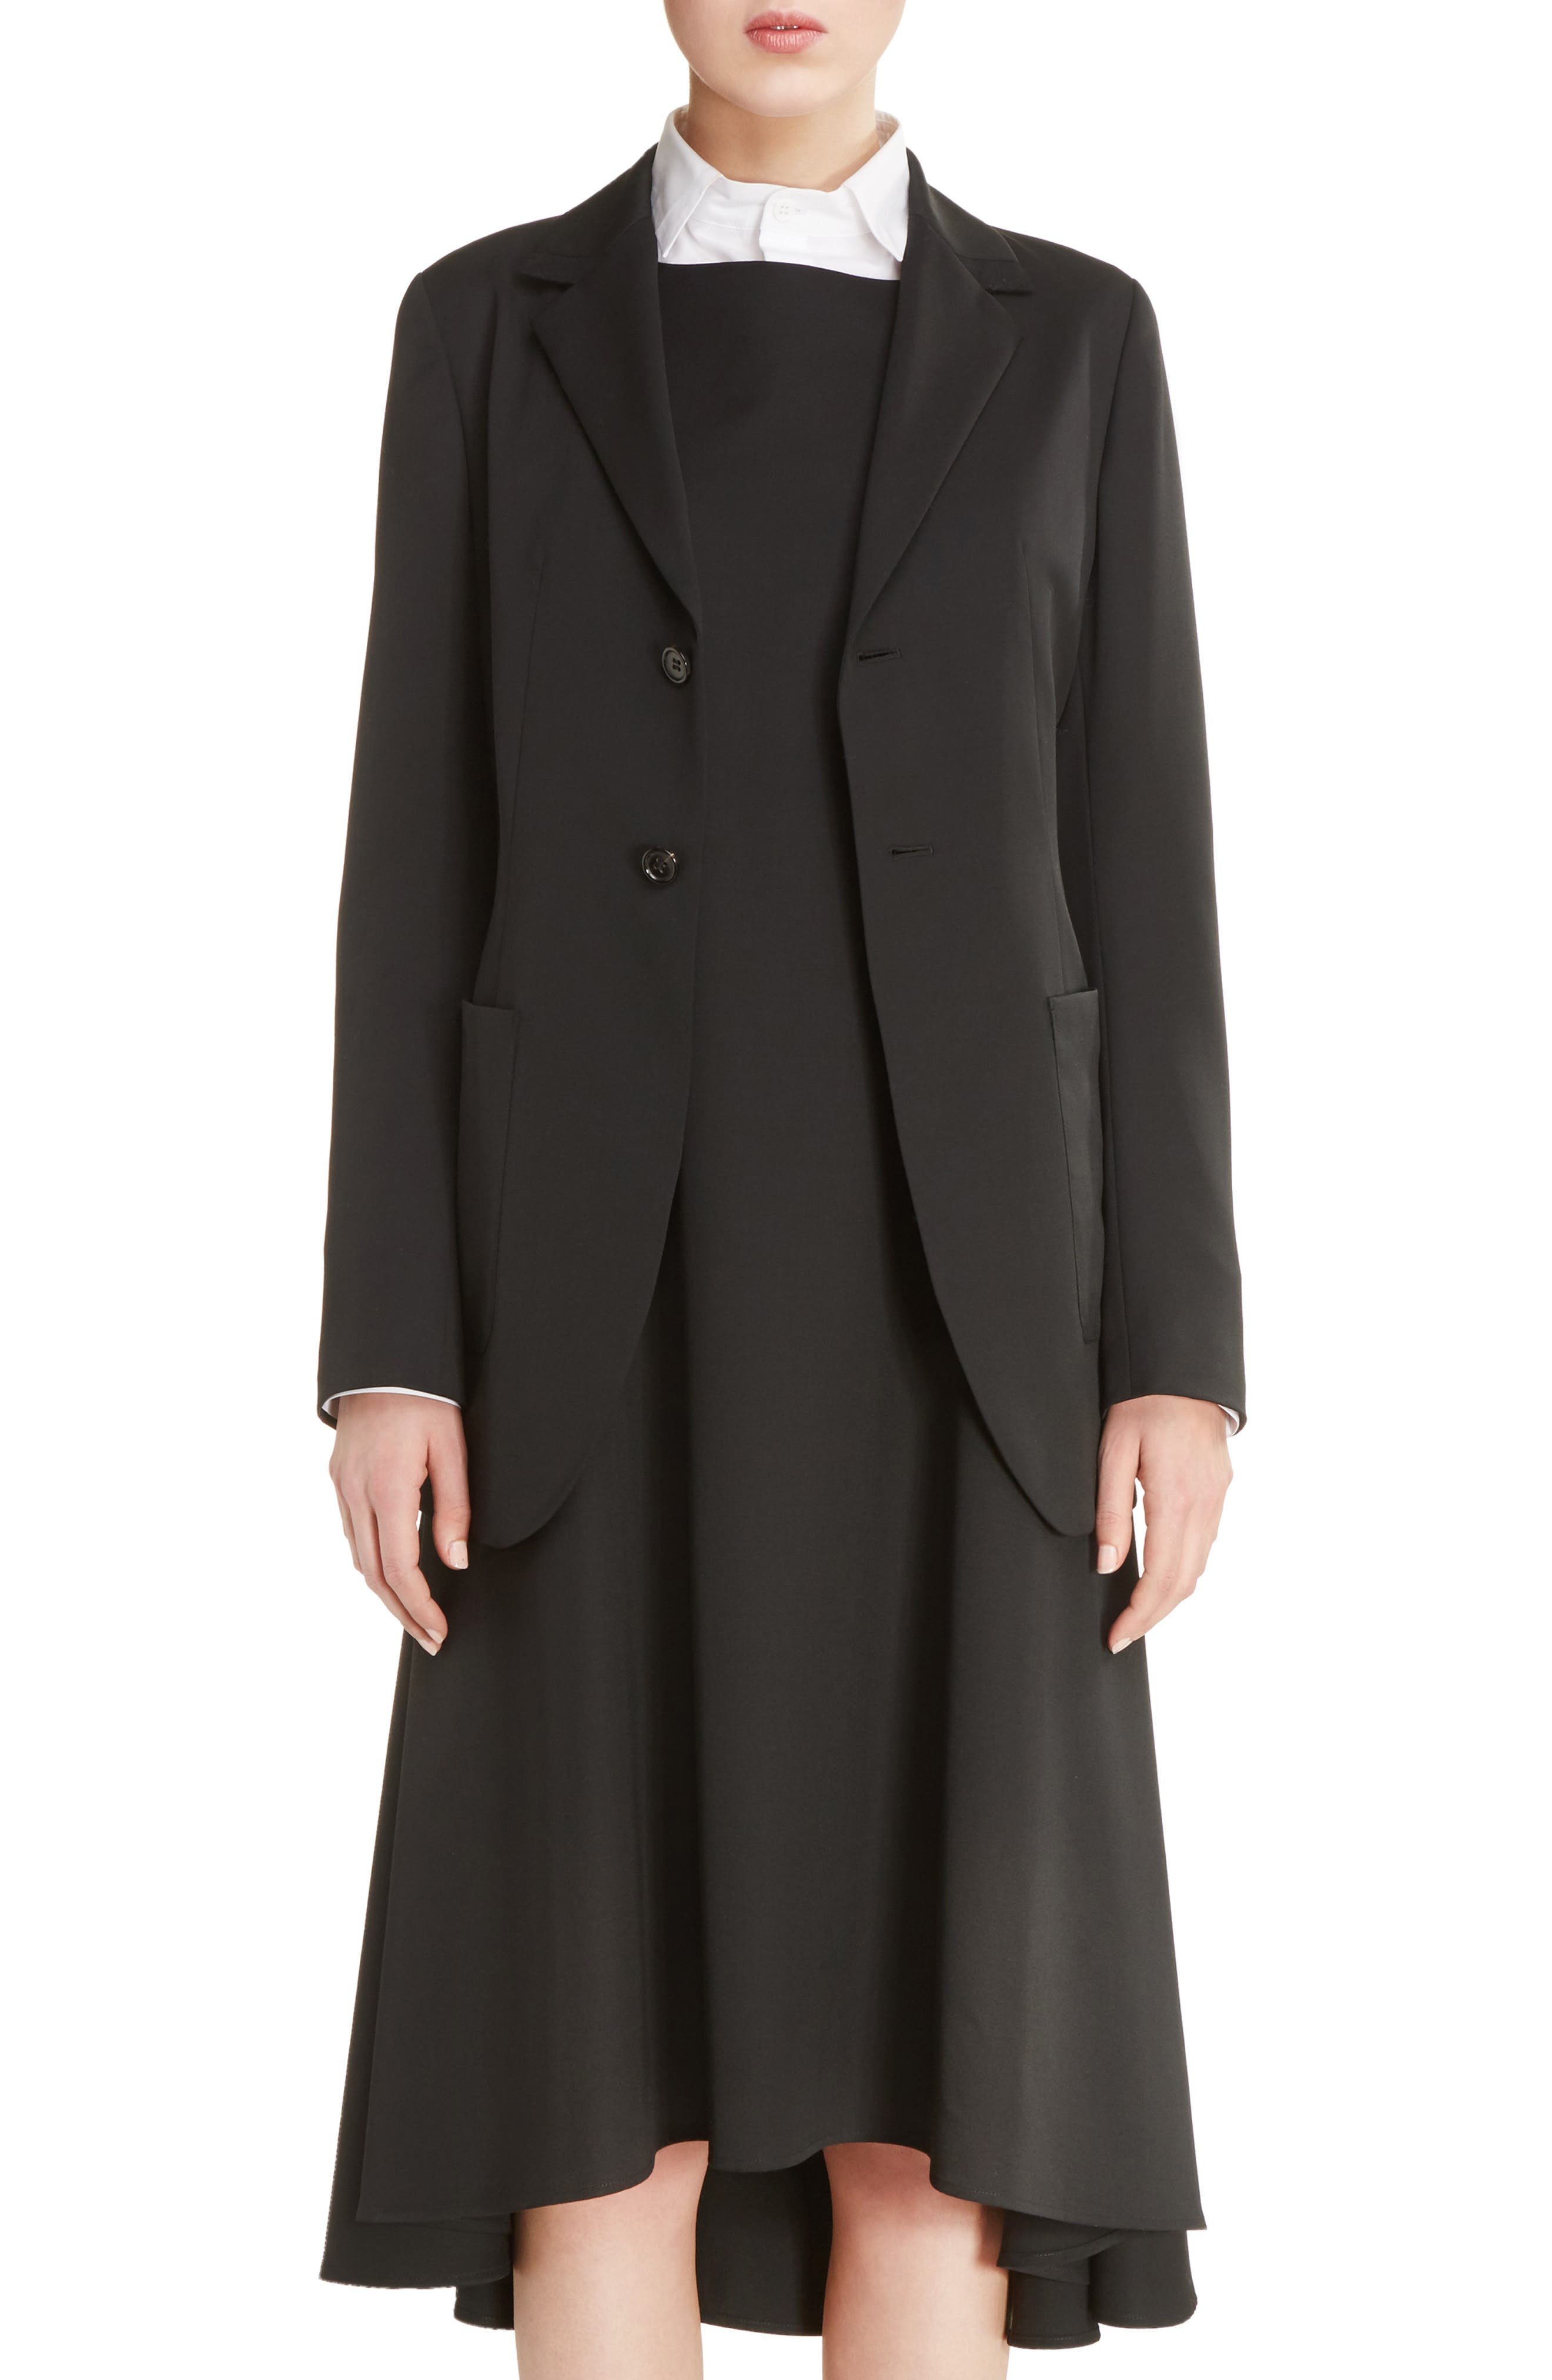 Y's by Yohji Yamamoto U-Out P Tailored Wool Jacket